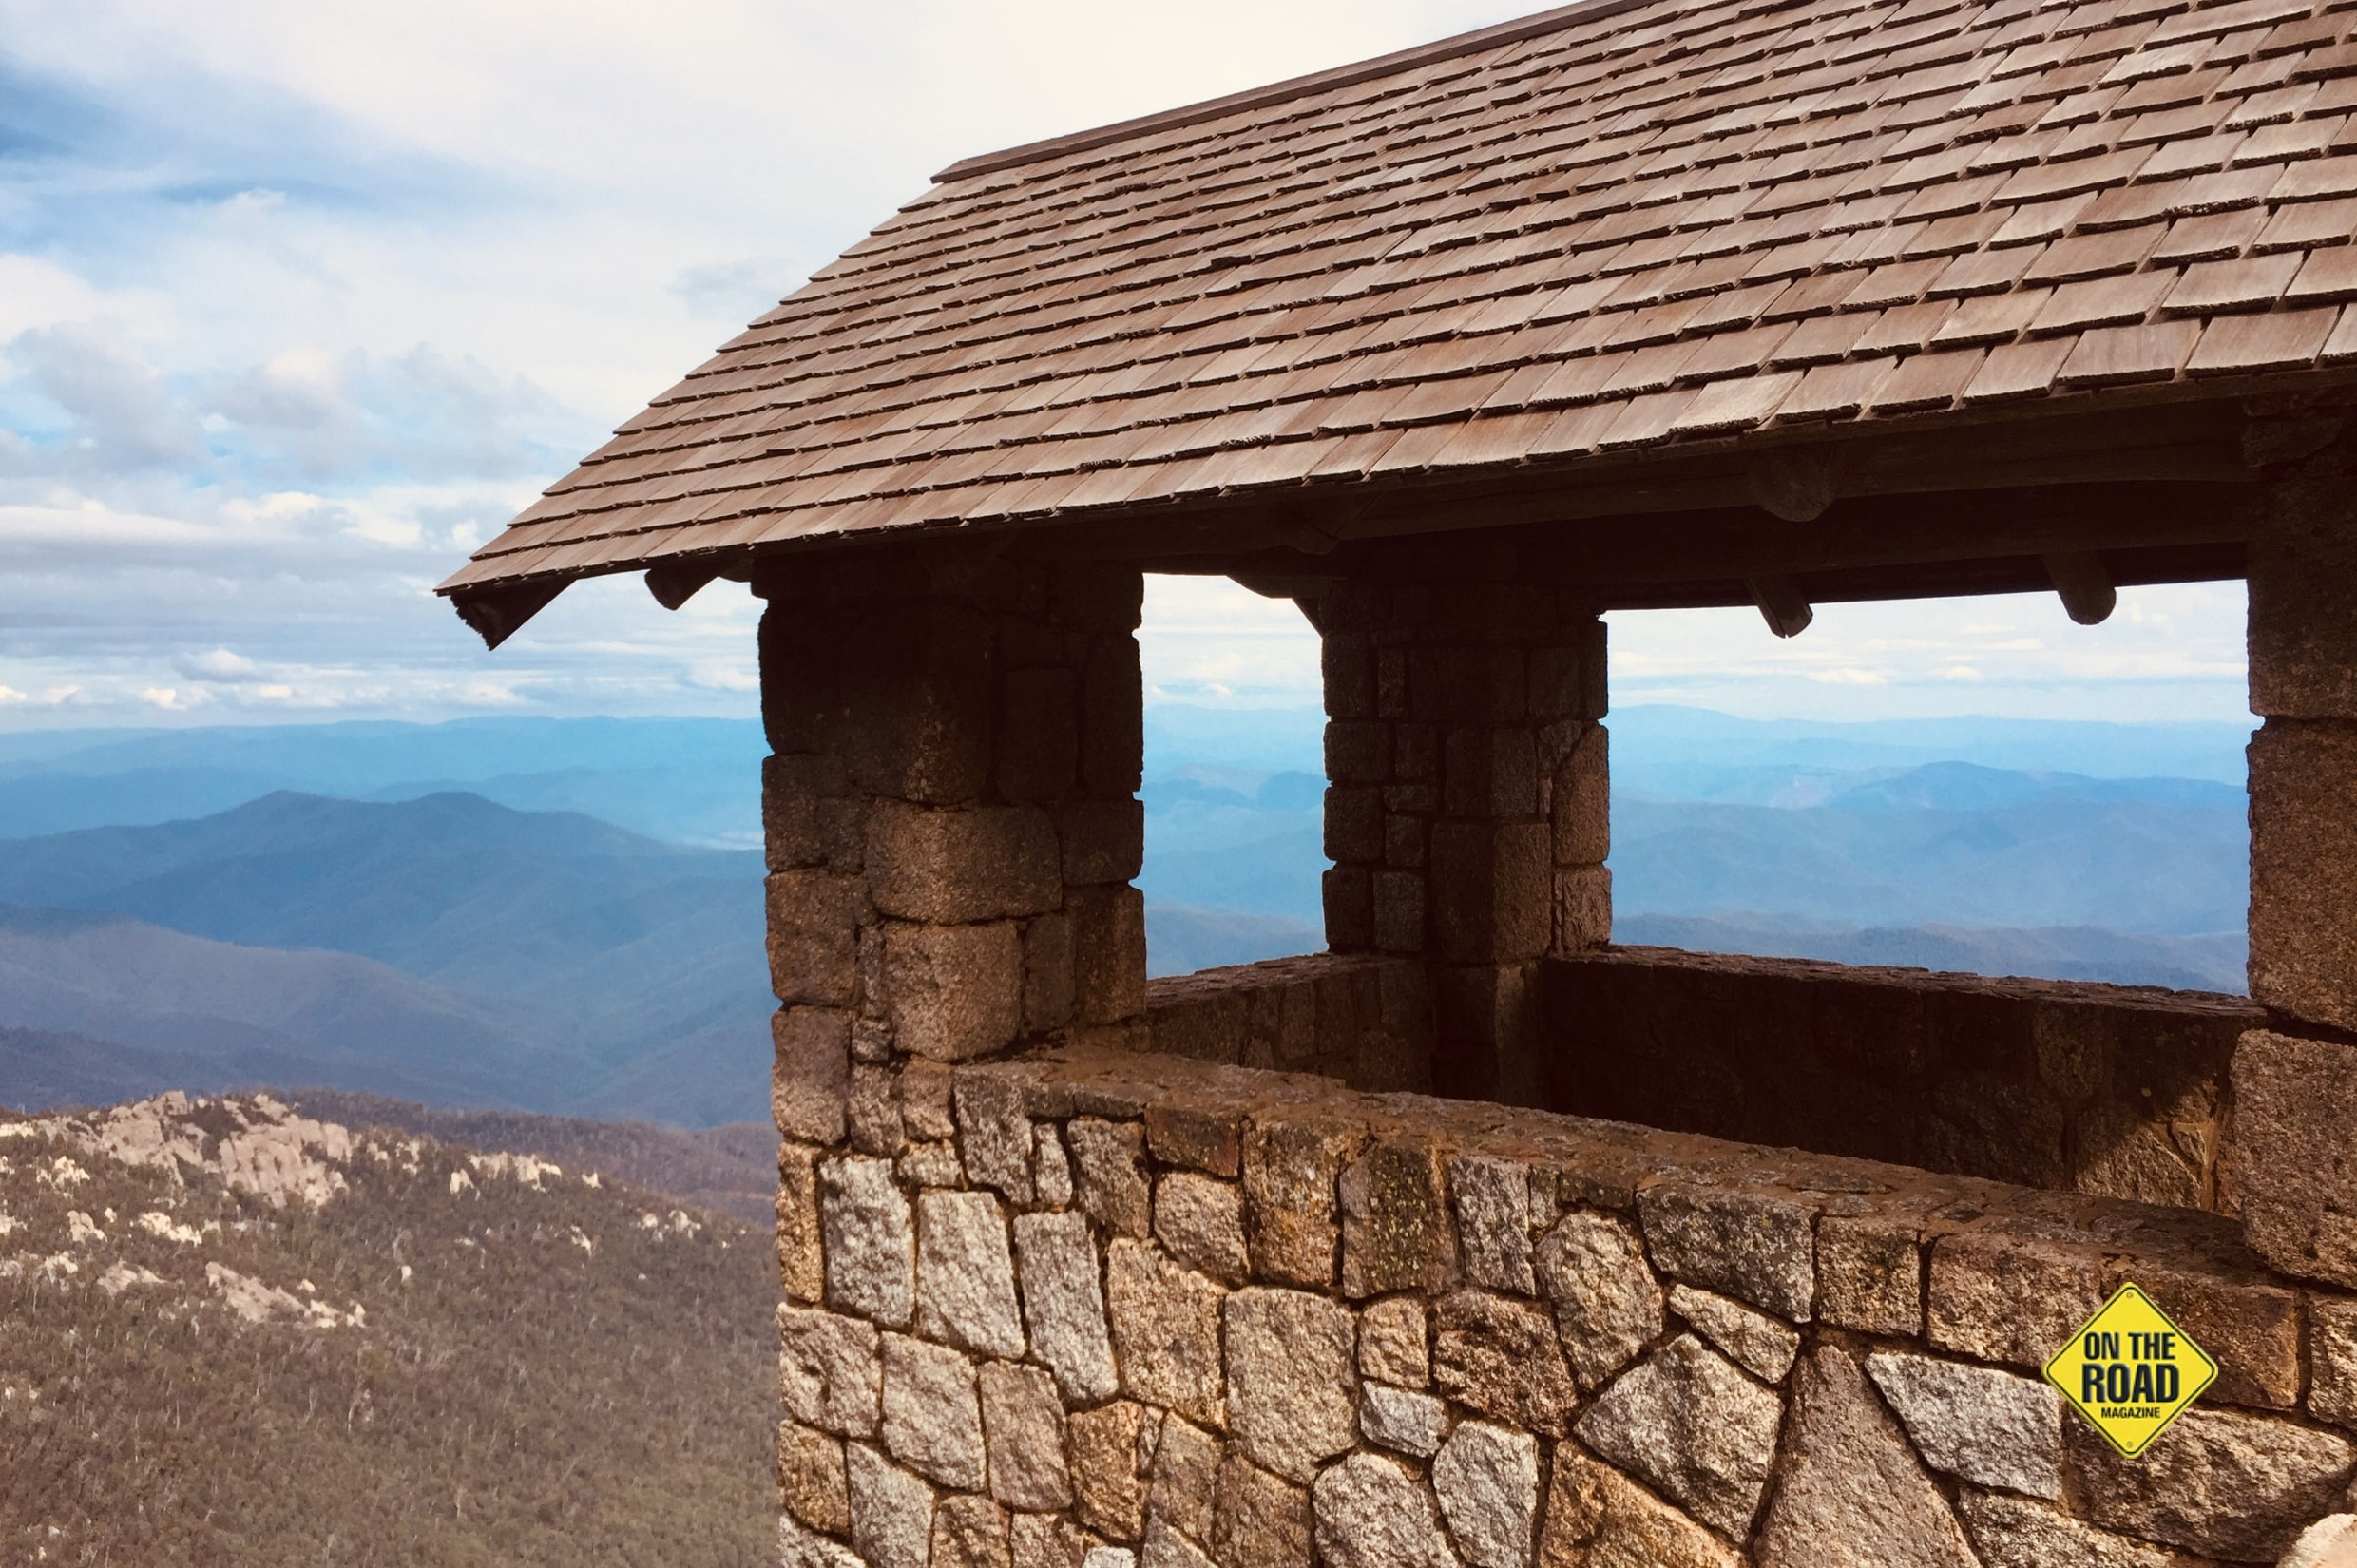 Mount Buffalo Lookout Tower